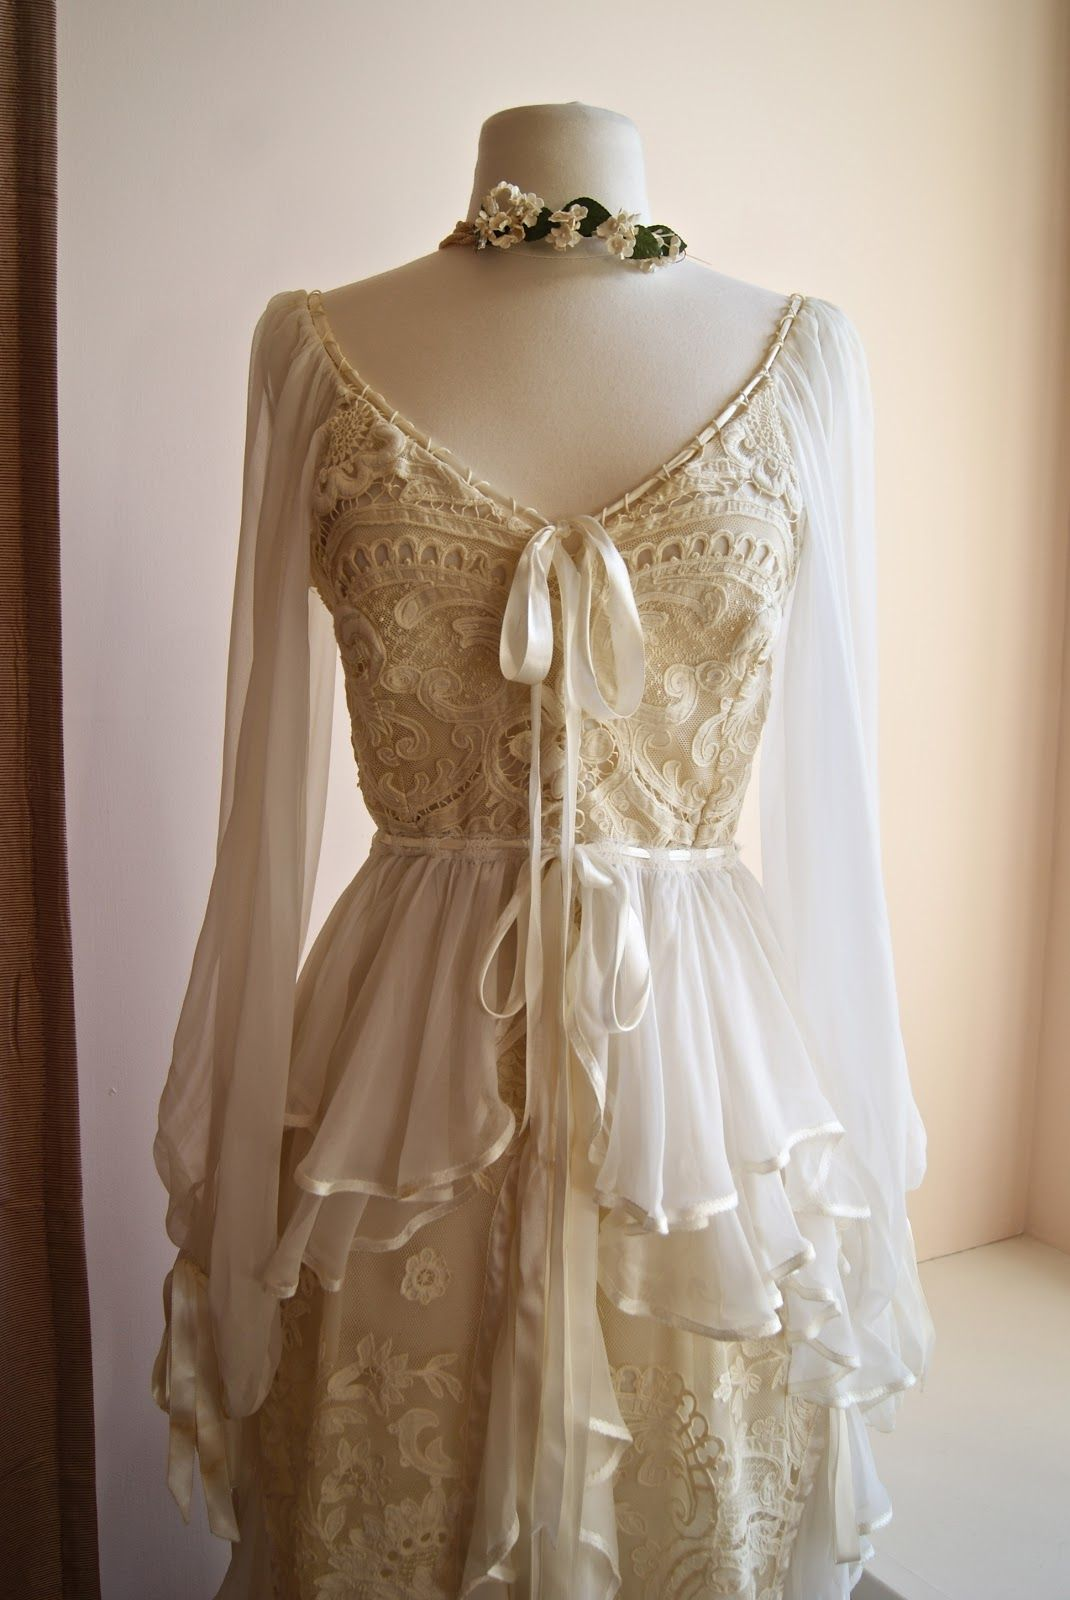 Soft and romantic champagne wedding dresses google search xtabay vintage clothing boutique portland oregon boho dream dress custom made in new orleans with antique lace and silk chiffon ombrellifo Images